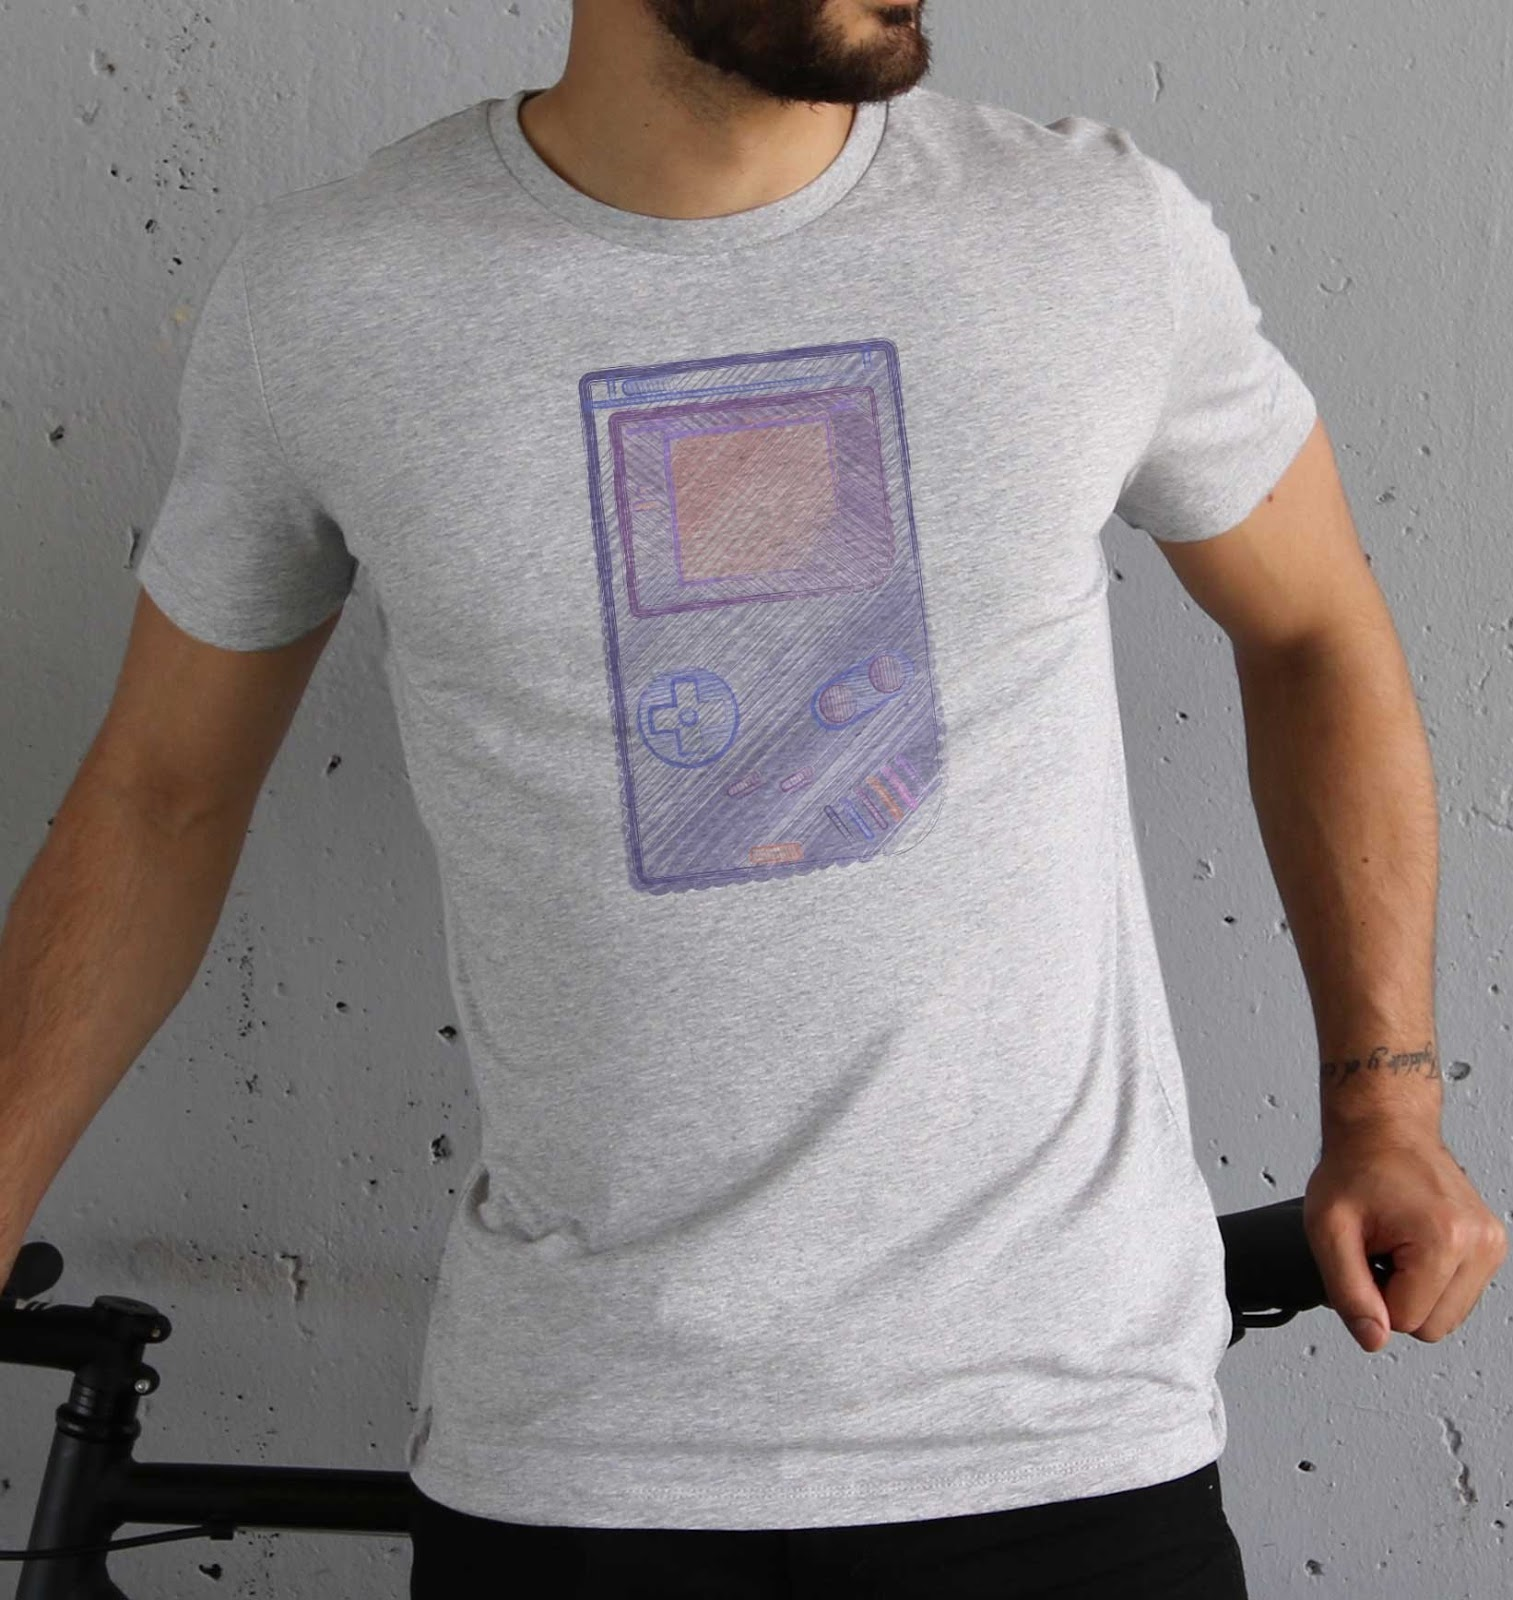 https://grafitee.co/tshirts/purple-gameboy-t-shirt